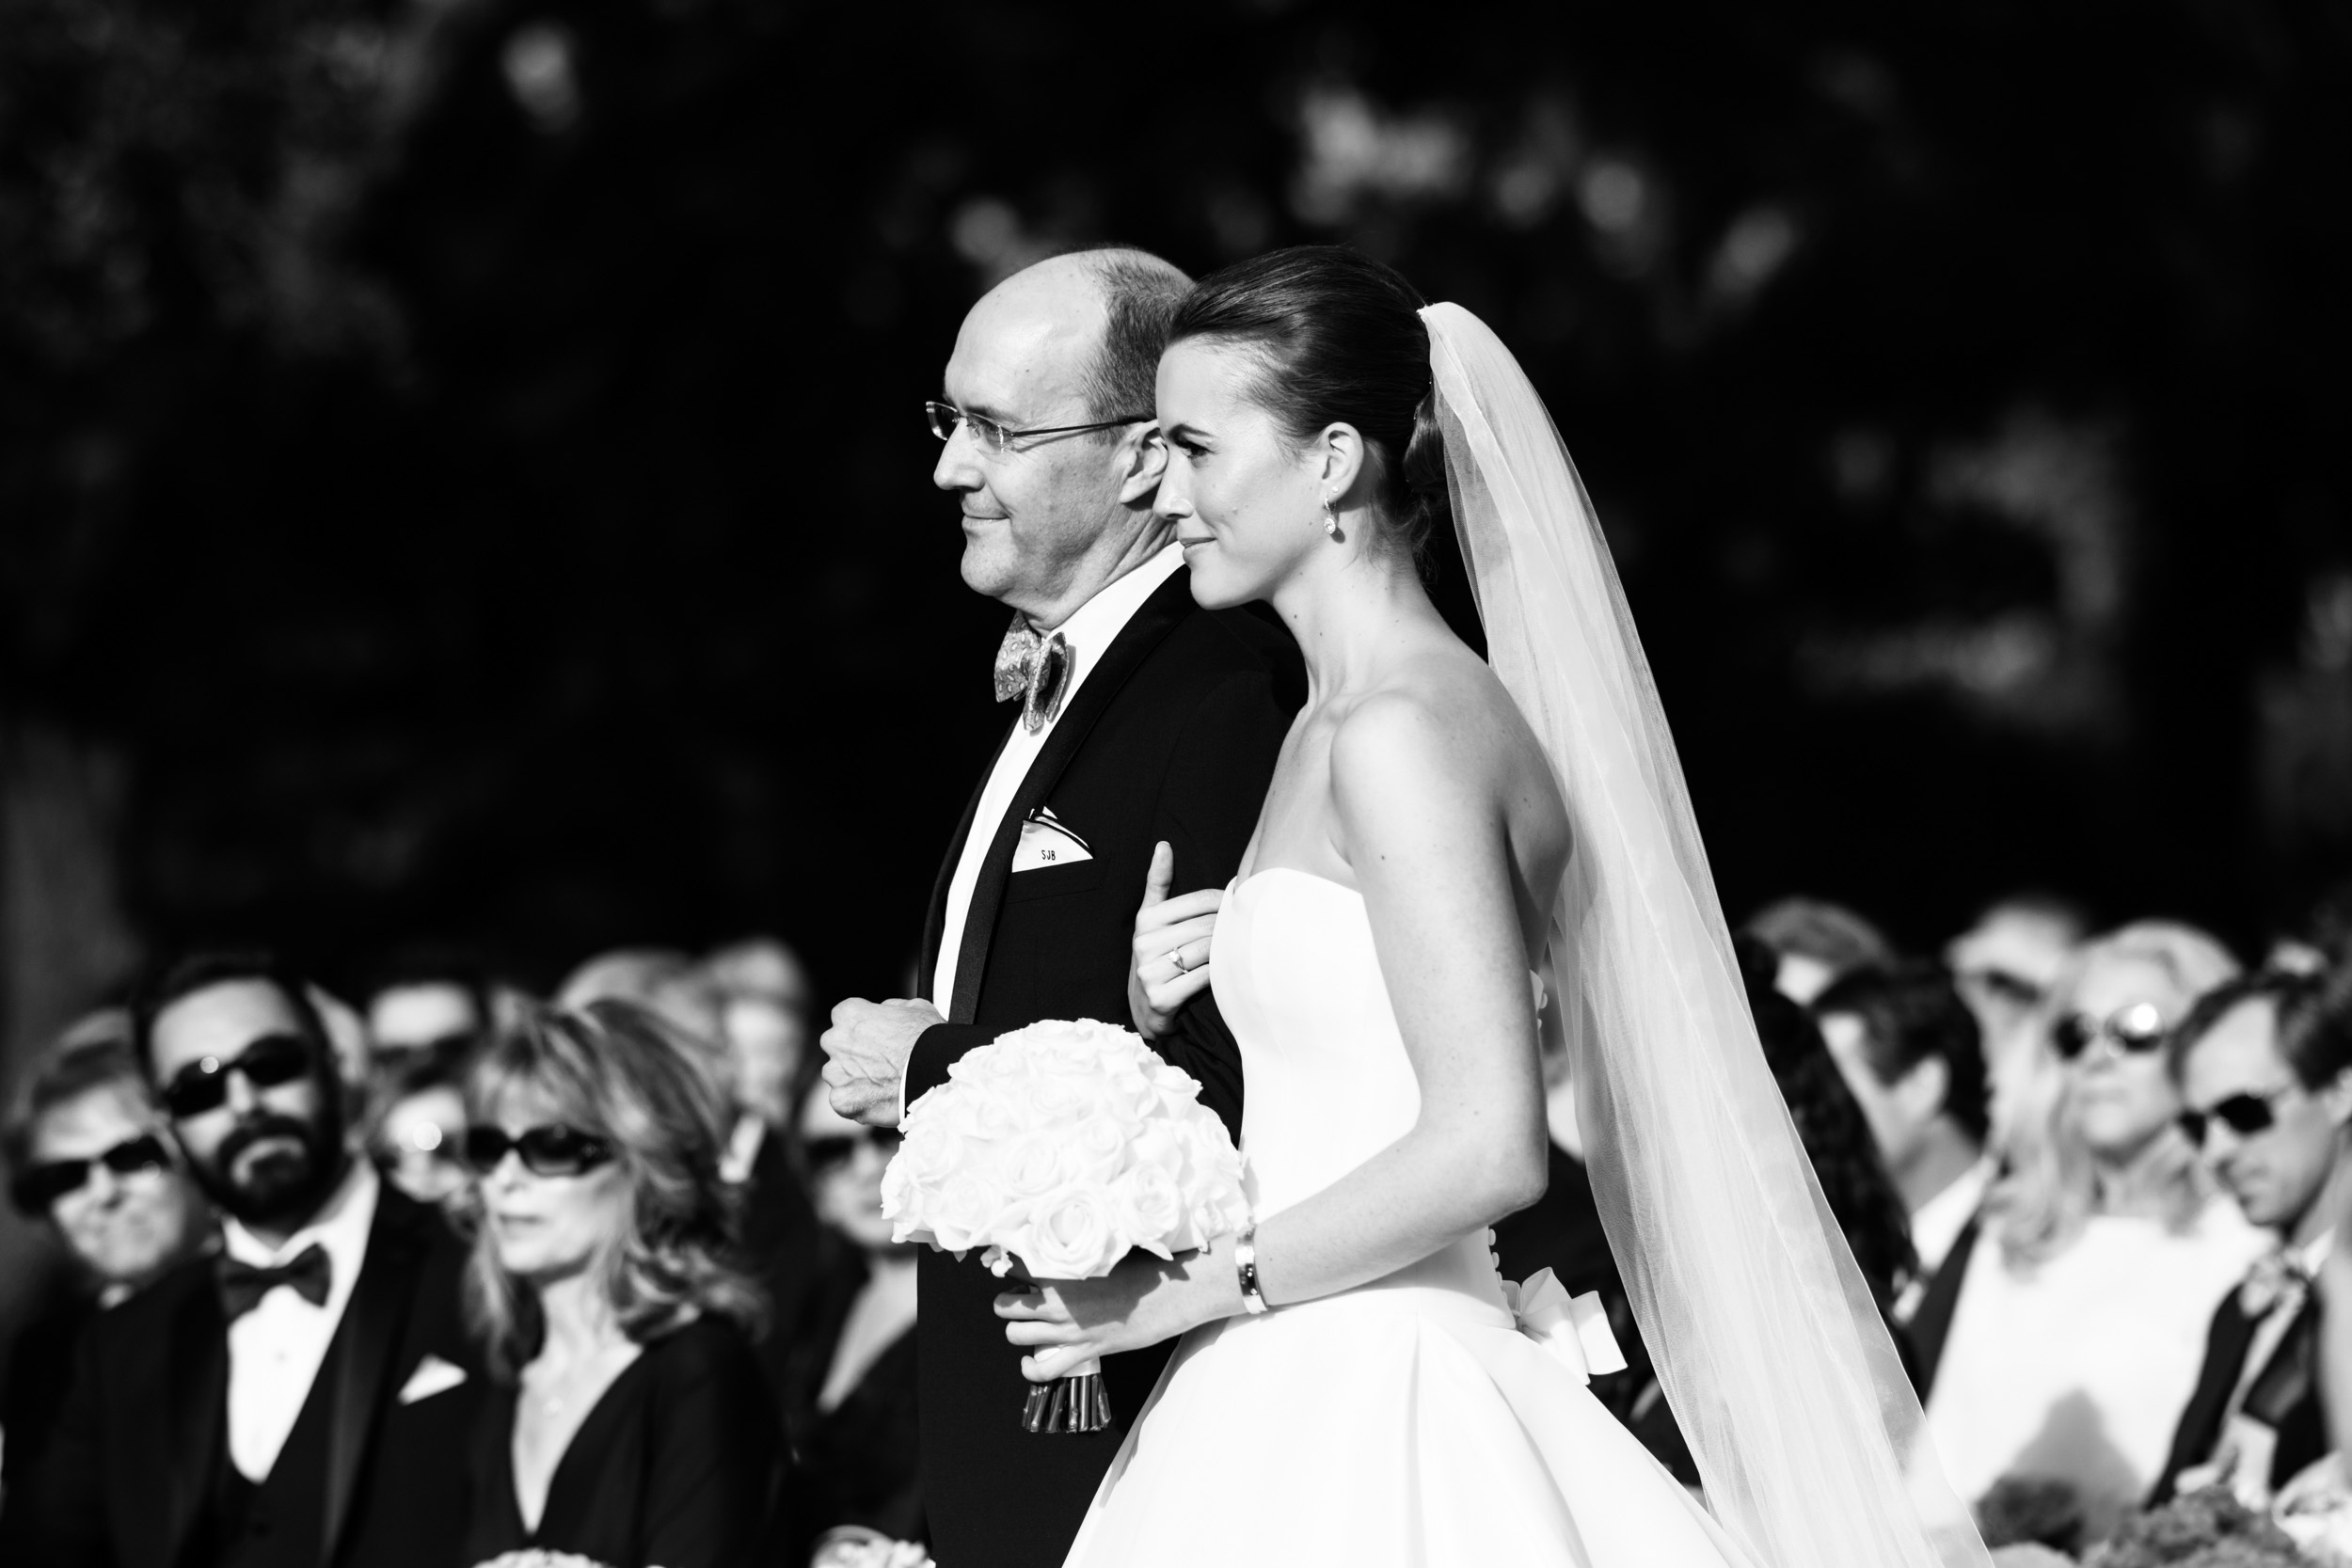 Bride and her father during her wedding ceremony at Kiawah island golf club river course.